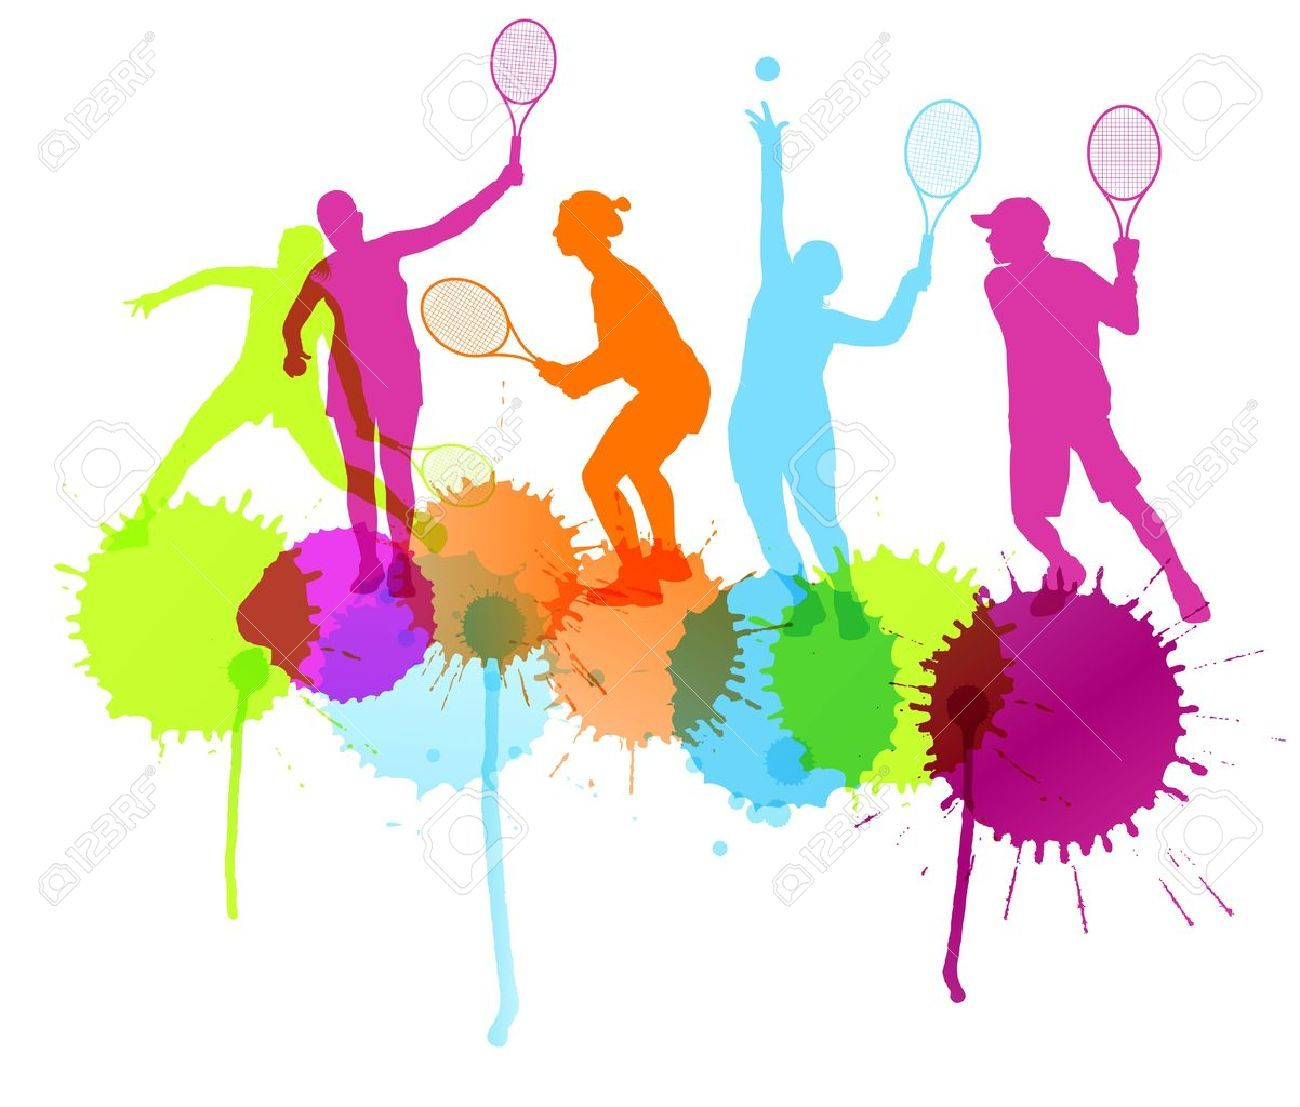 Tennis Players Silhouettes Vector Background Concept With Ink Volleyball Silhouette Volleyball Free Design